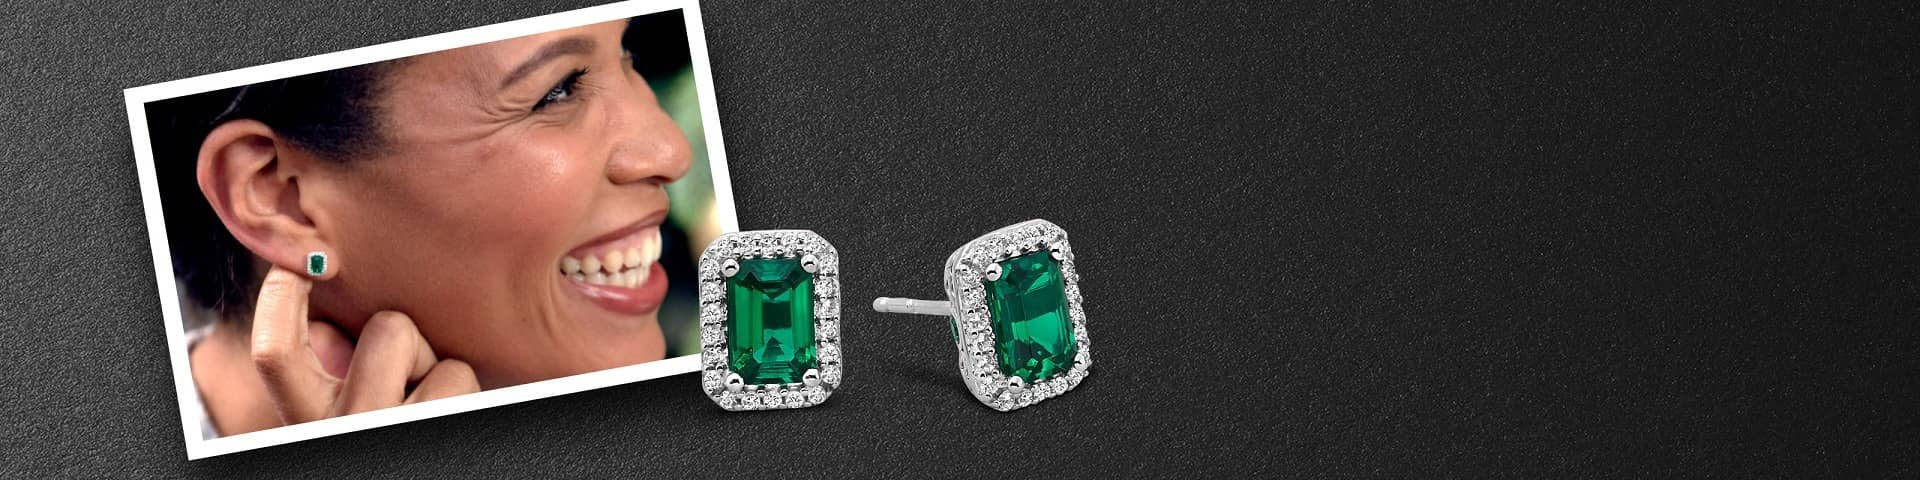 Emerald gemstone earrings rest against a portrait of a woman modeling the same pair of earrings.